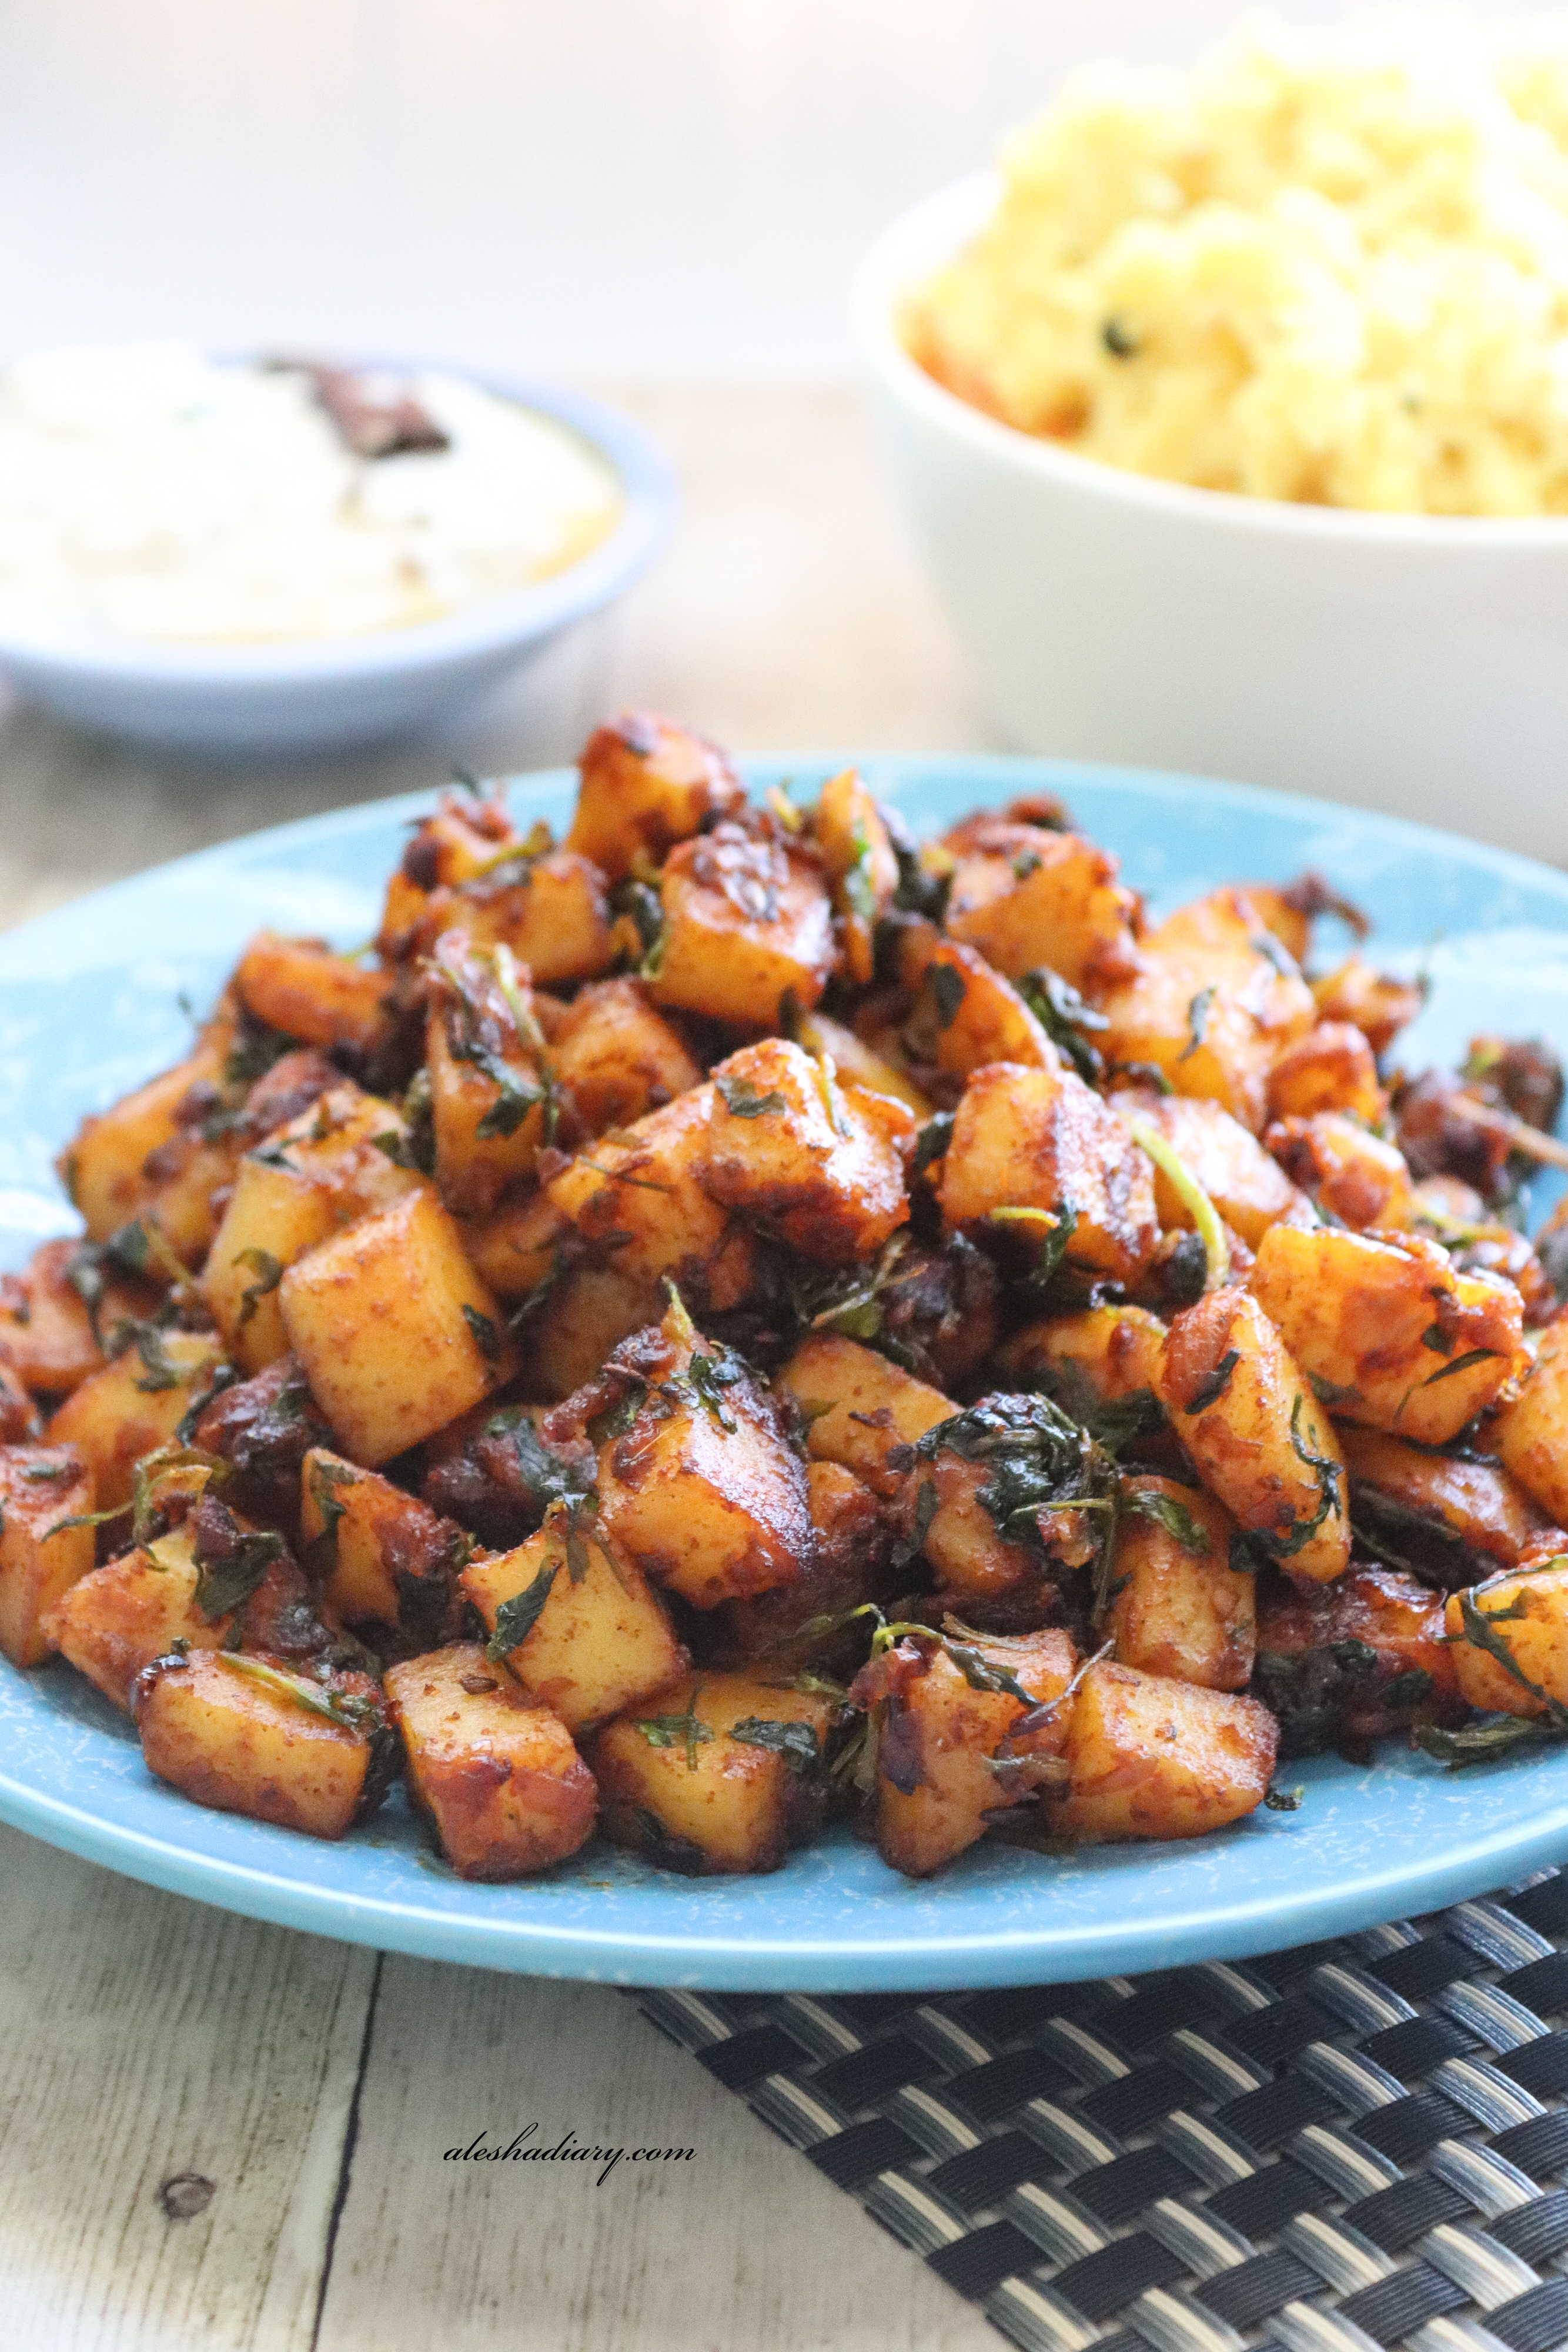 Aloo methi fry – Potato with fenugreek leaves